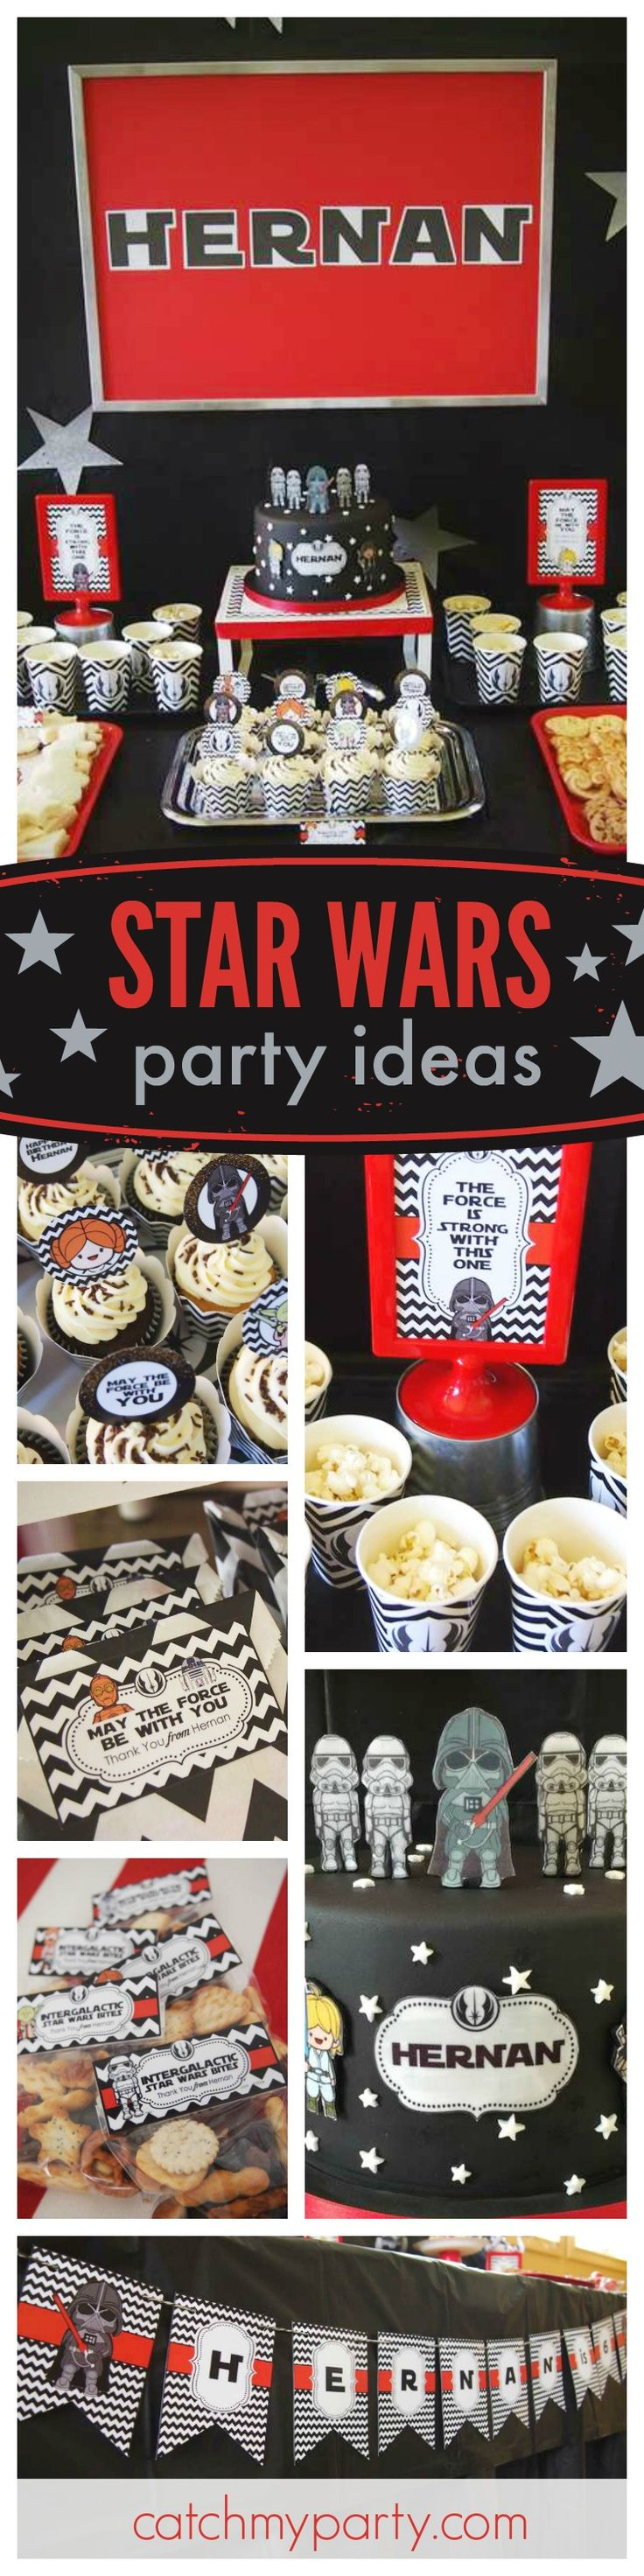 393 best Star Wars Party Ideas images on Pinterest